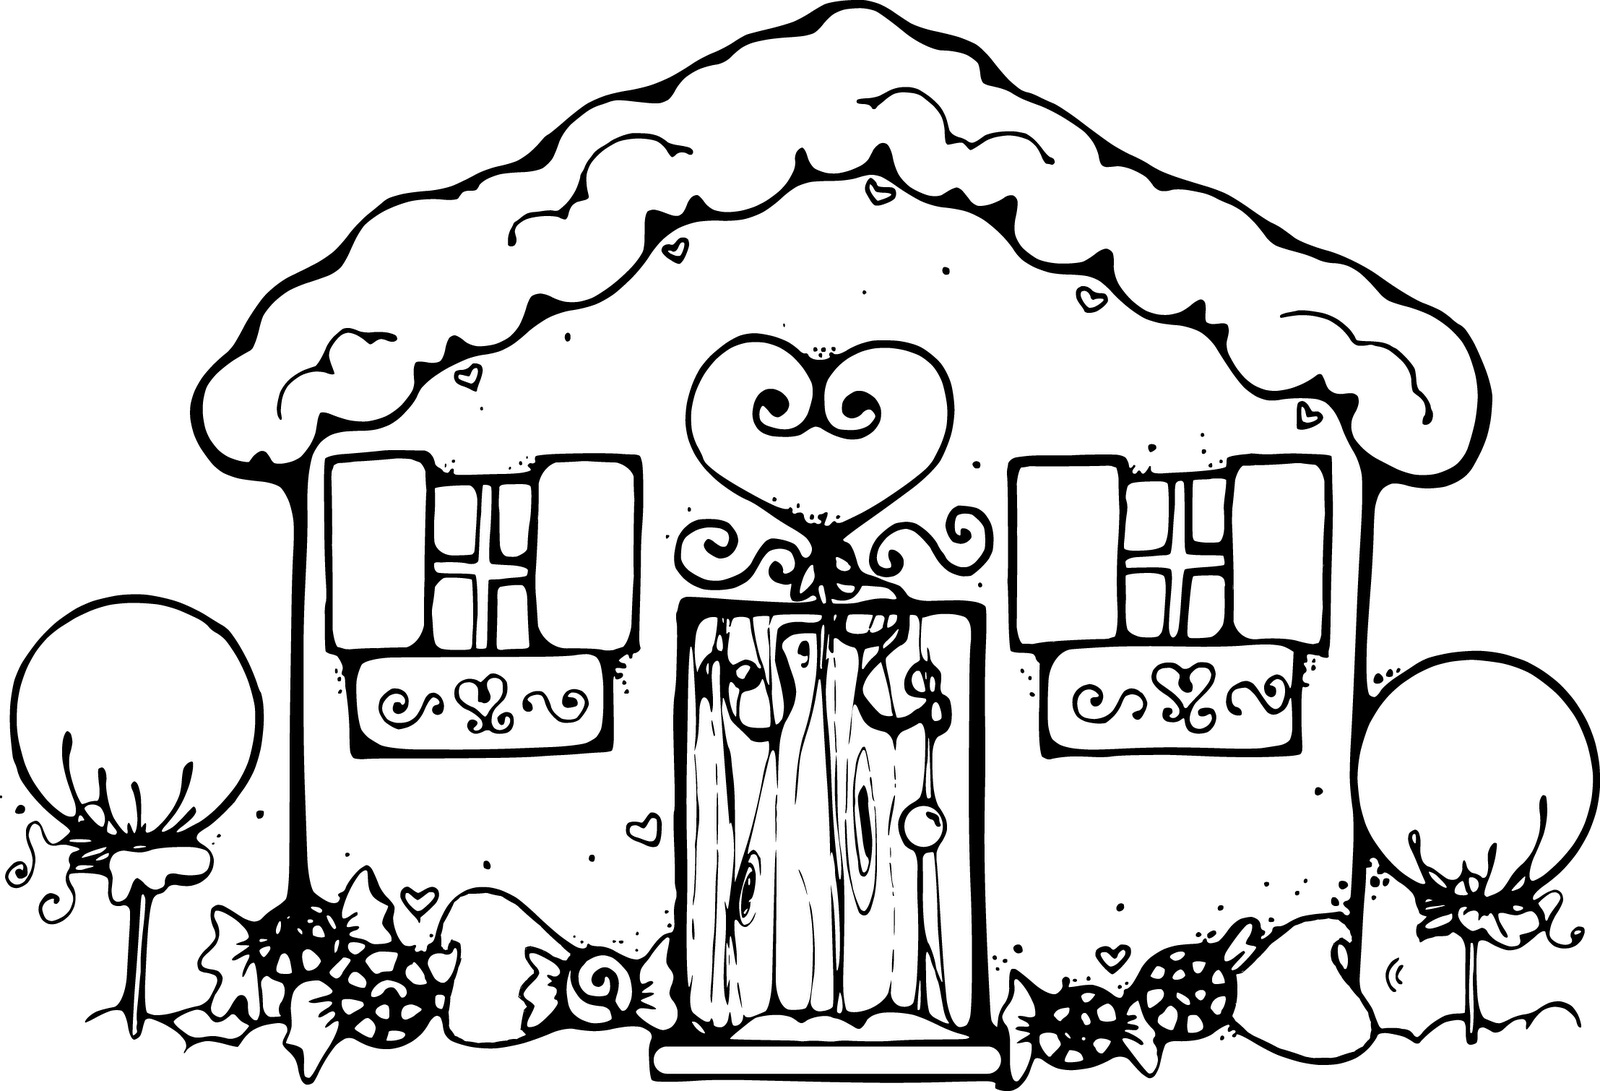 colouring pictures of houses free printable house coloring pages for kids colouring pictures of houses